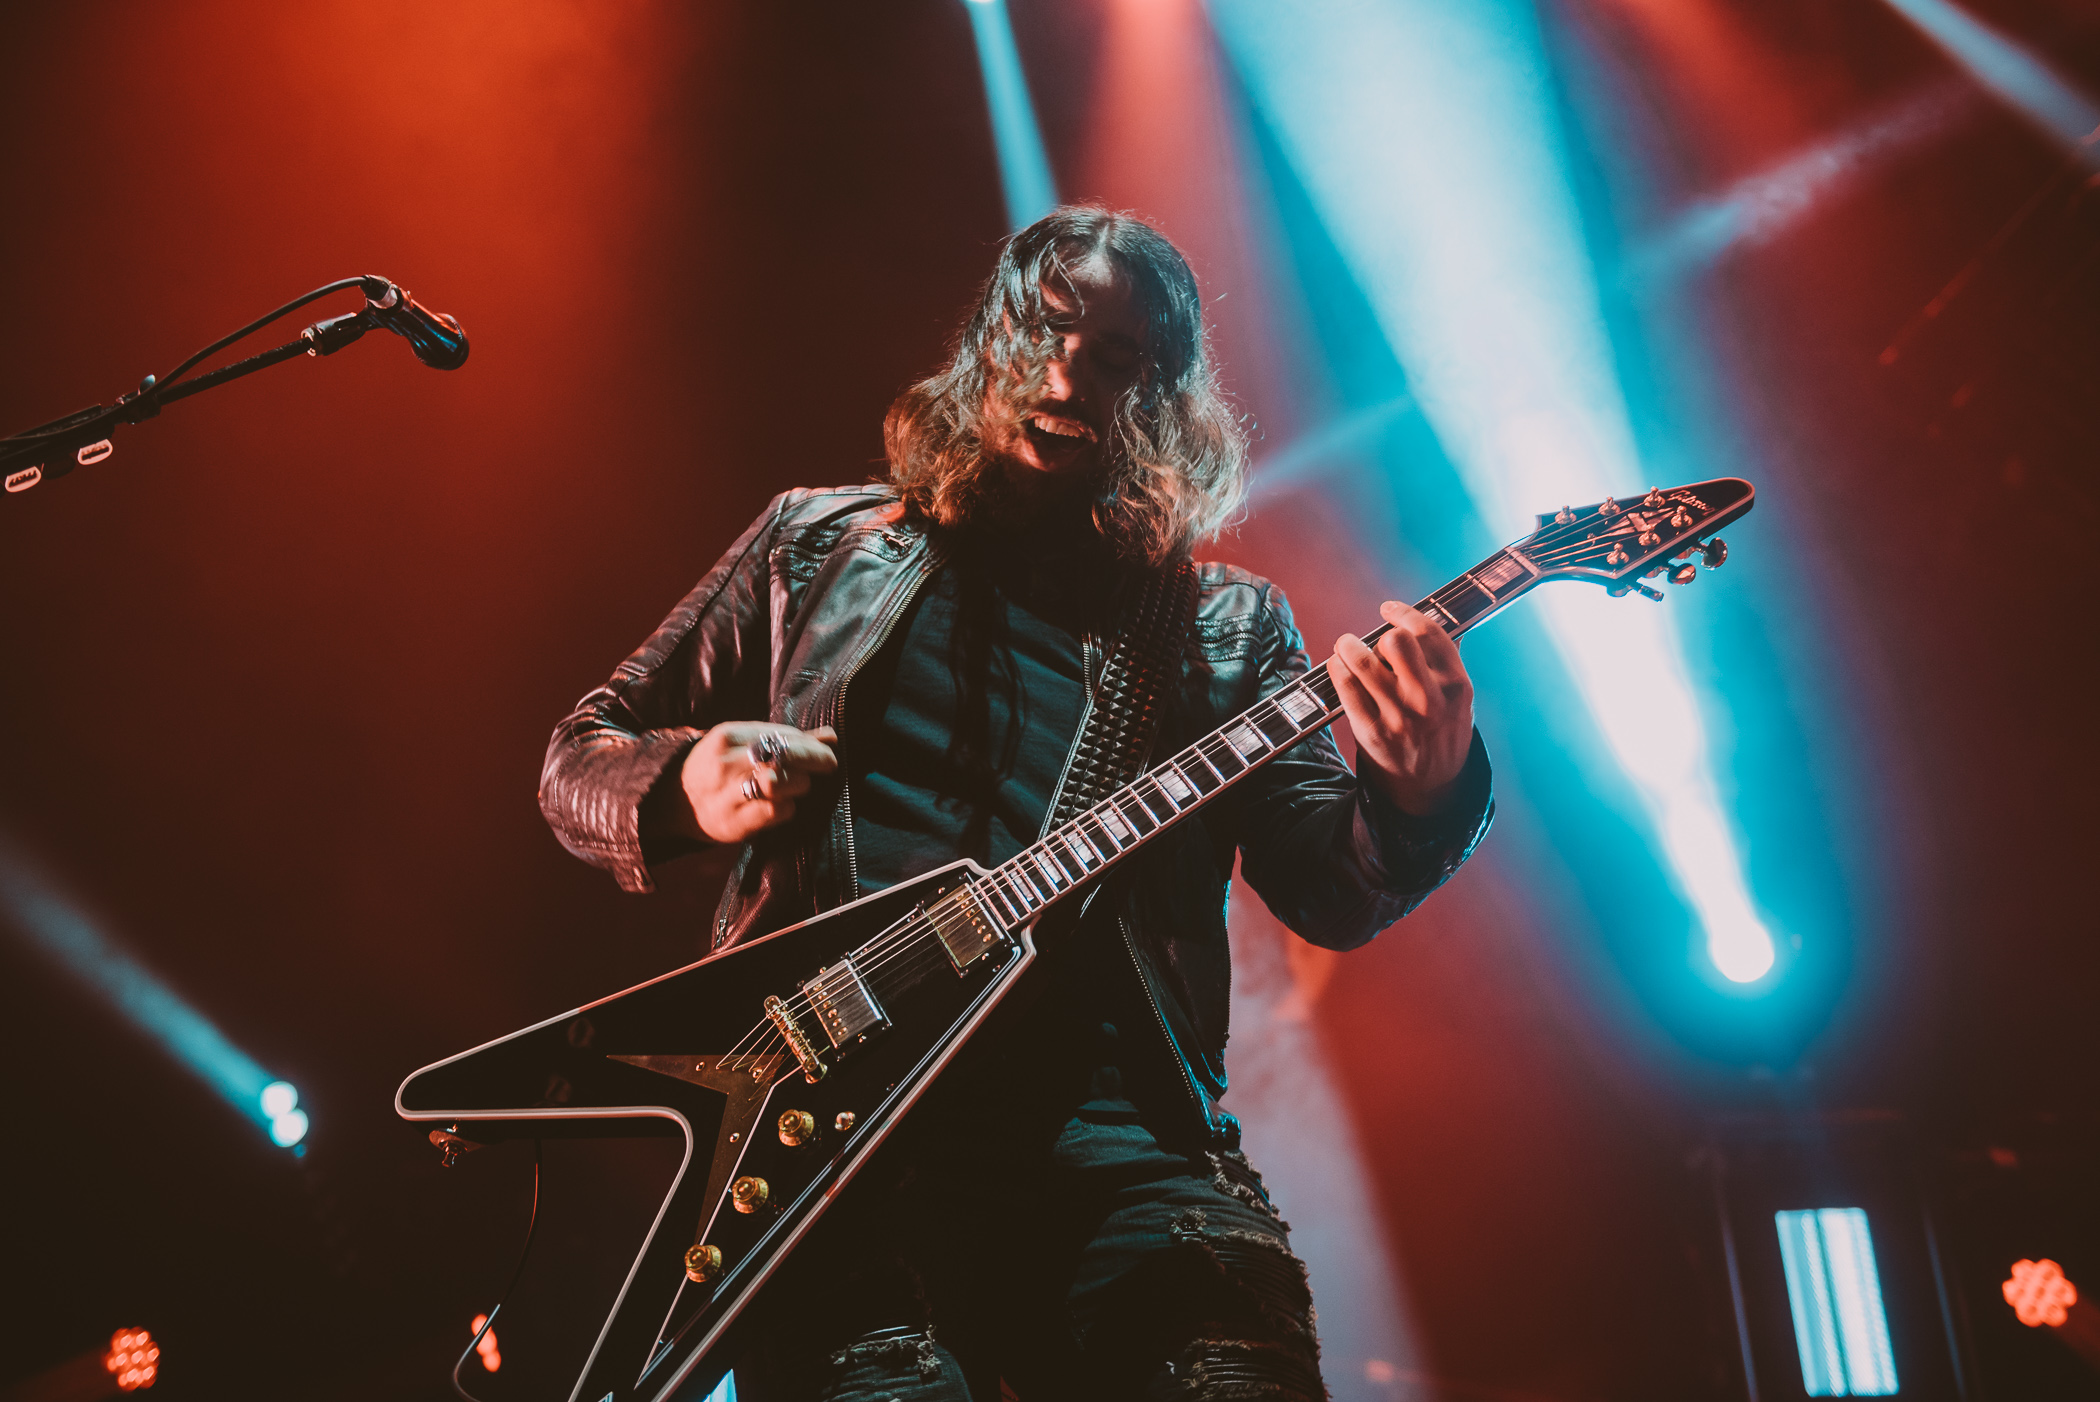 2_Halestorm-Abbotsford_Centre-Timothy_Nguyen-20180127 (1 of 15).jpg